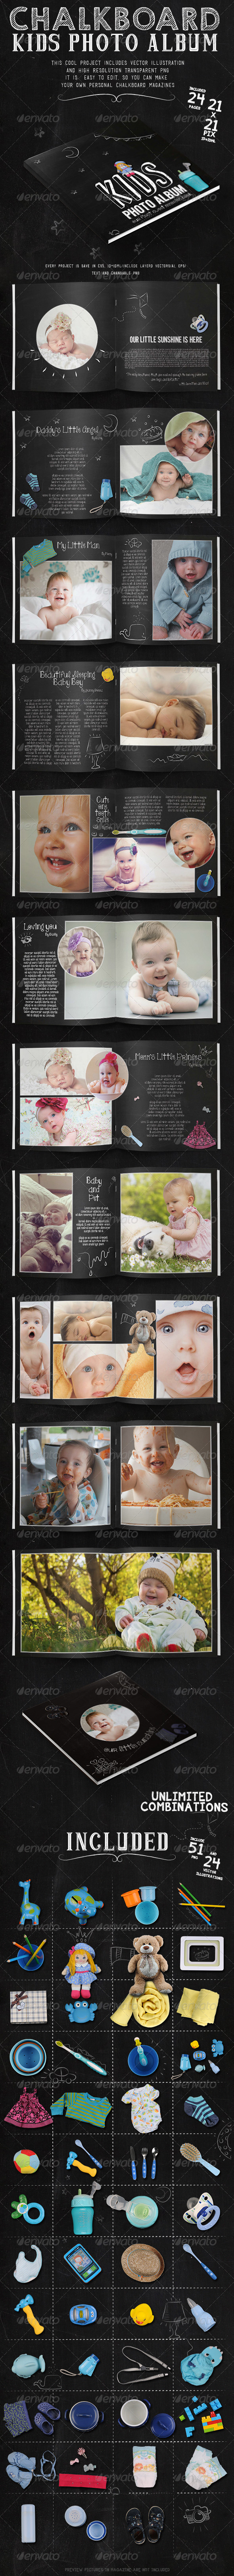 GraphicRiver Kids Chalkboard Photo Album 7962535